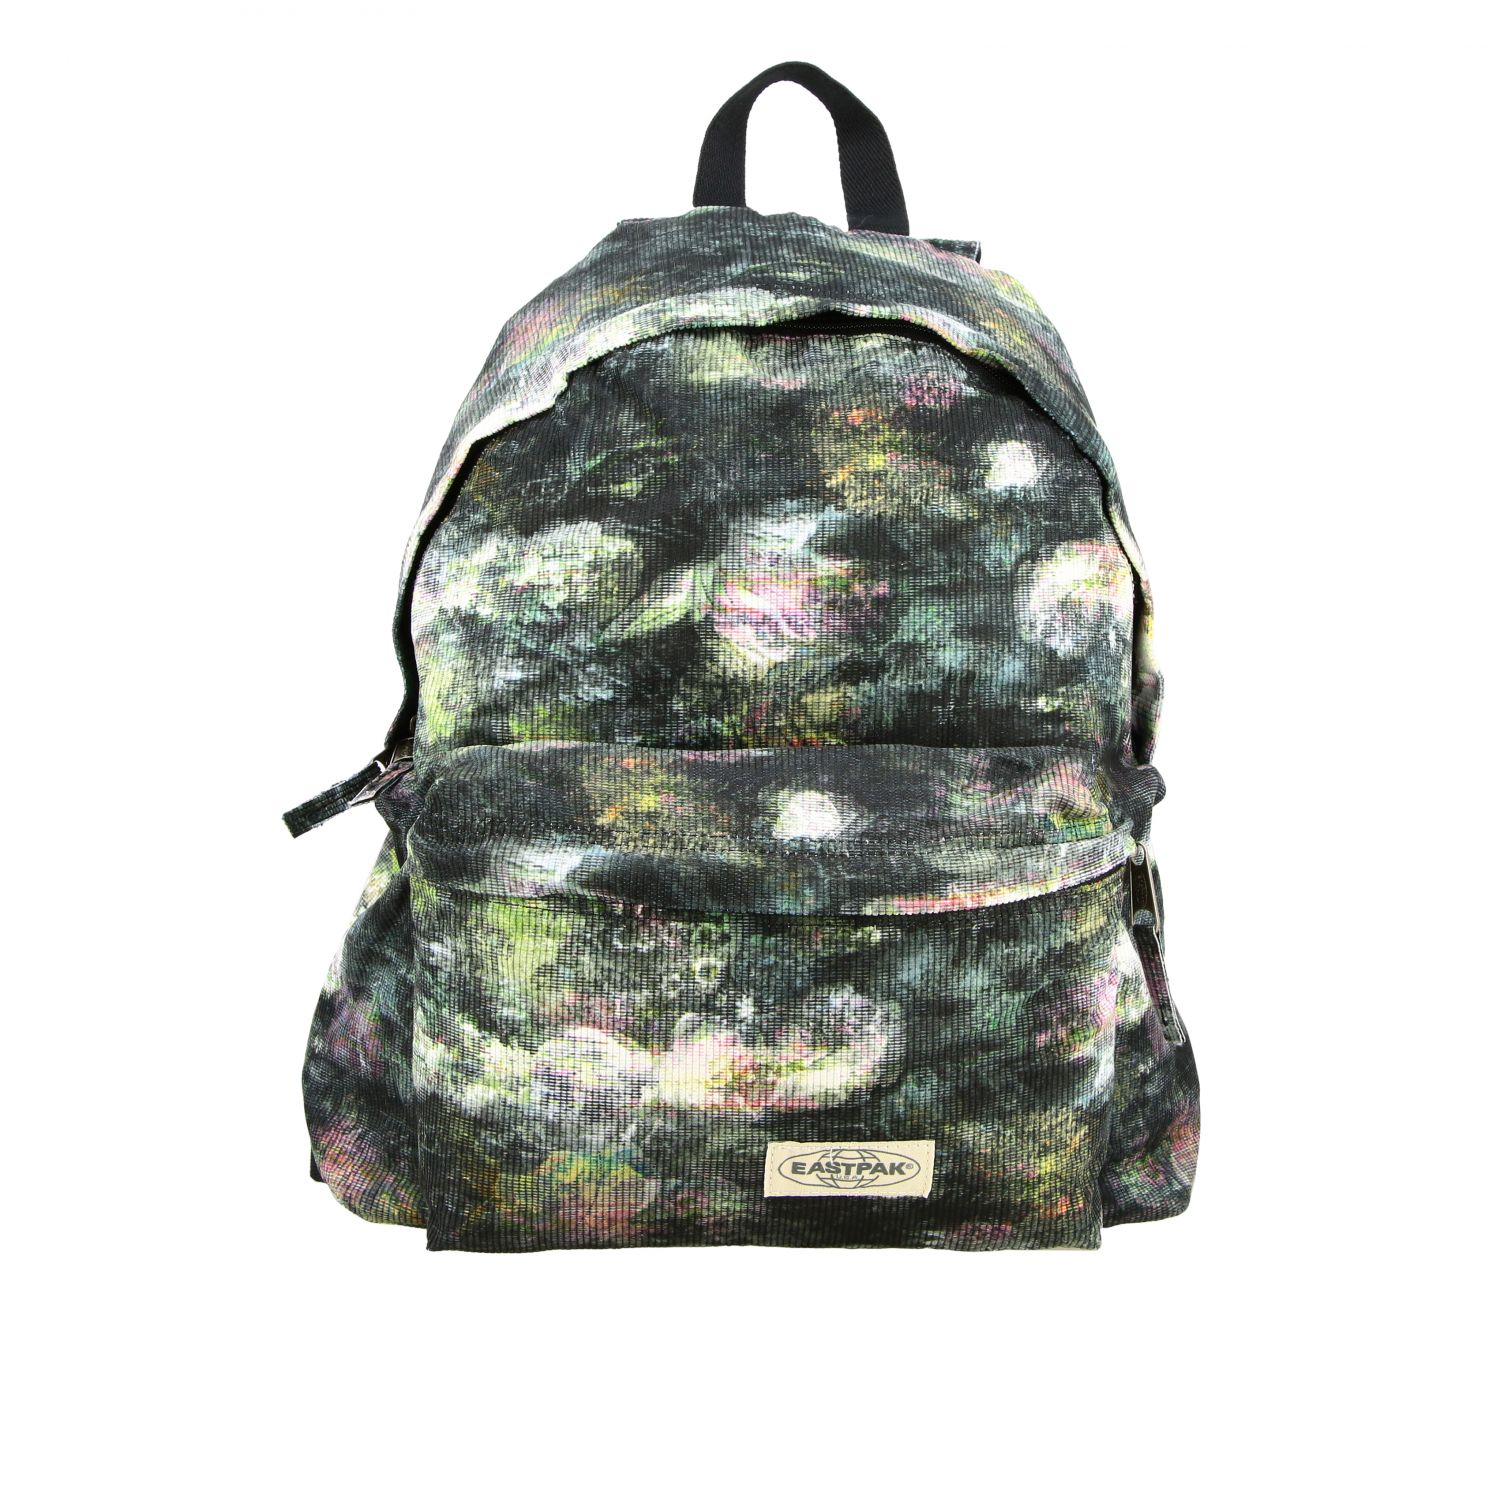 Shoulder bag women Eastpak multicolor 1